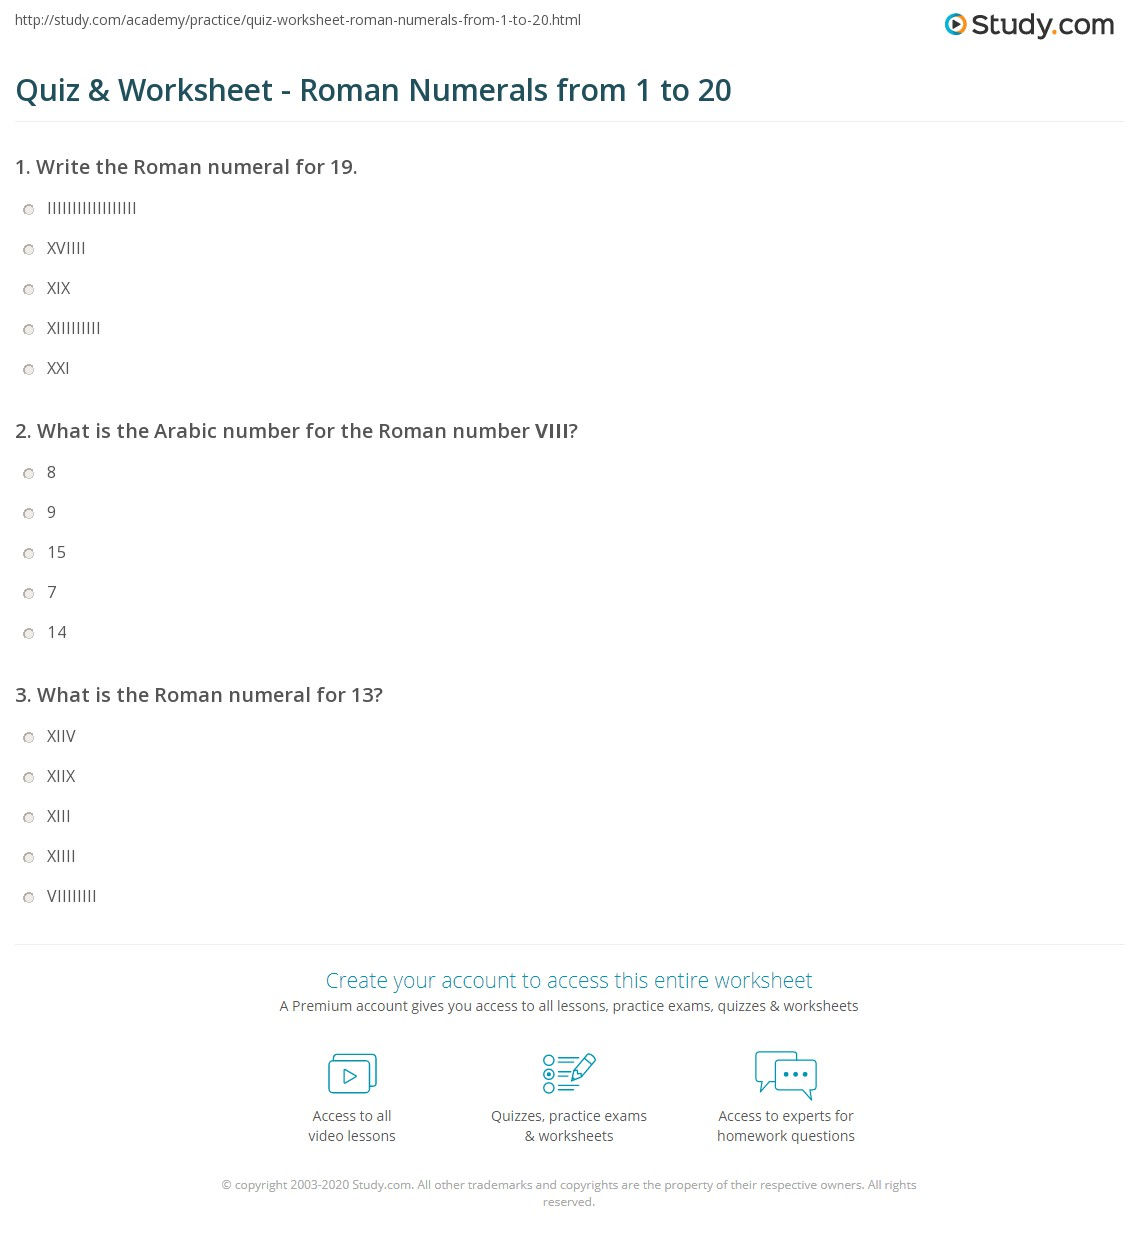 Worksheet Roman Numerals Lesson quiz worksheet roman numerals from 1 to 20 study com print worksheet